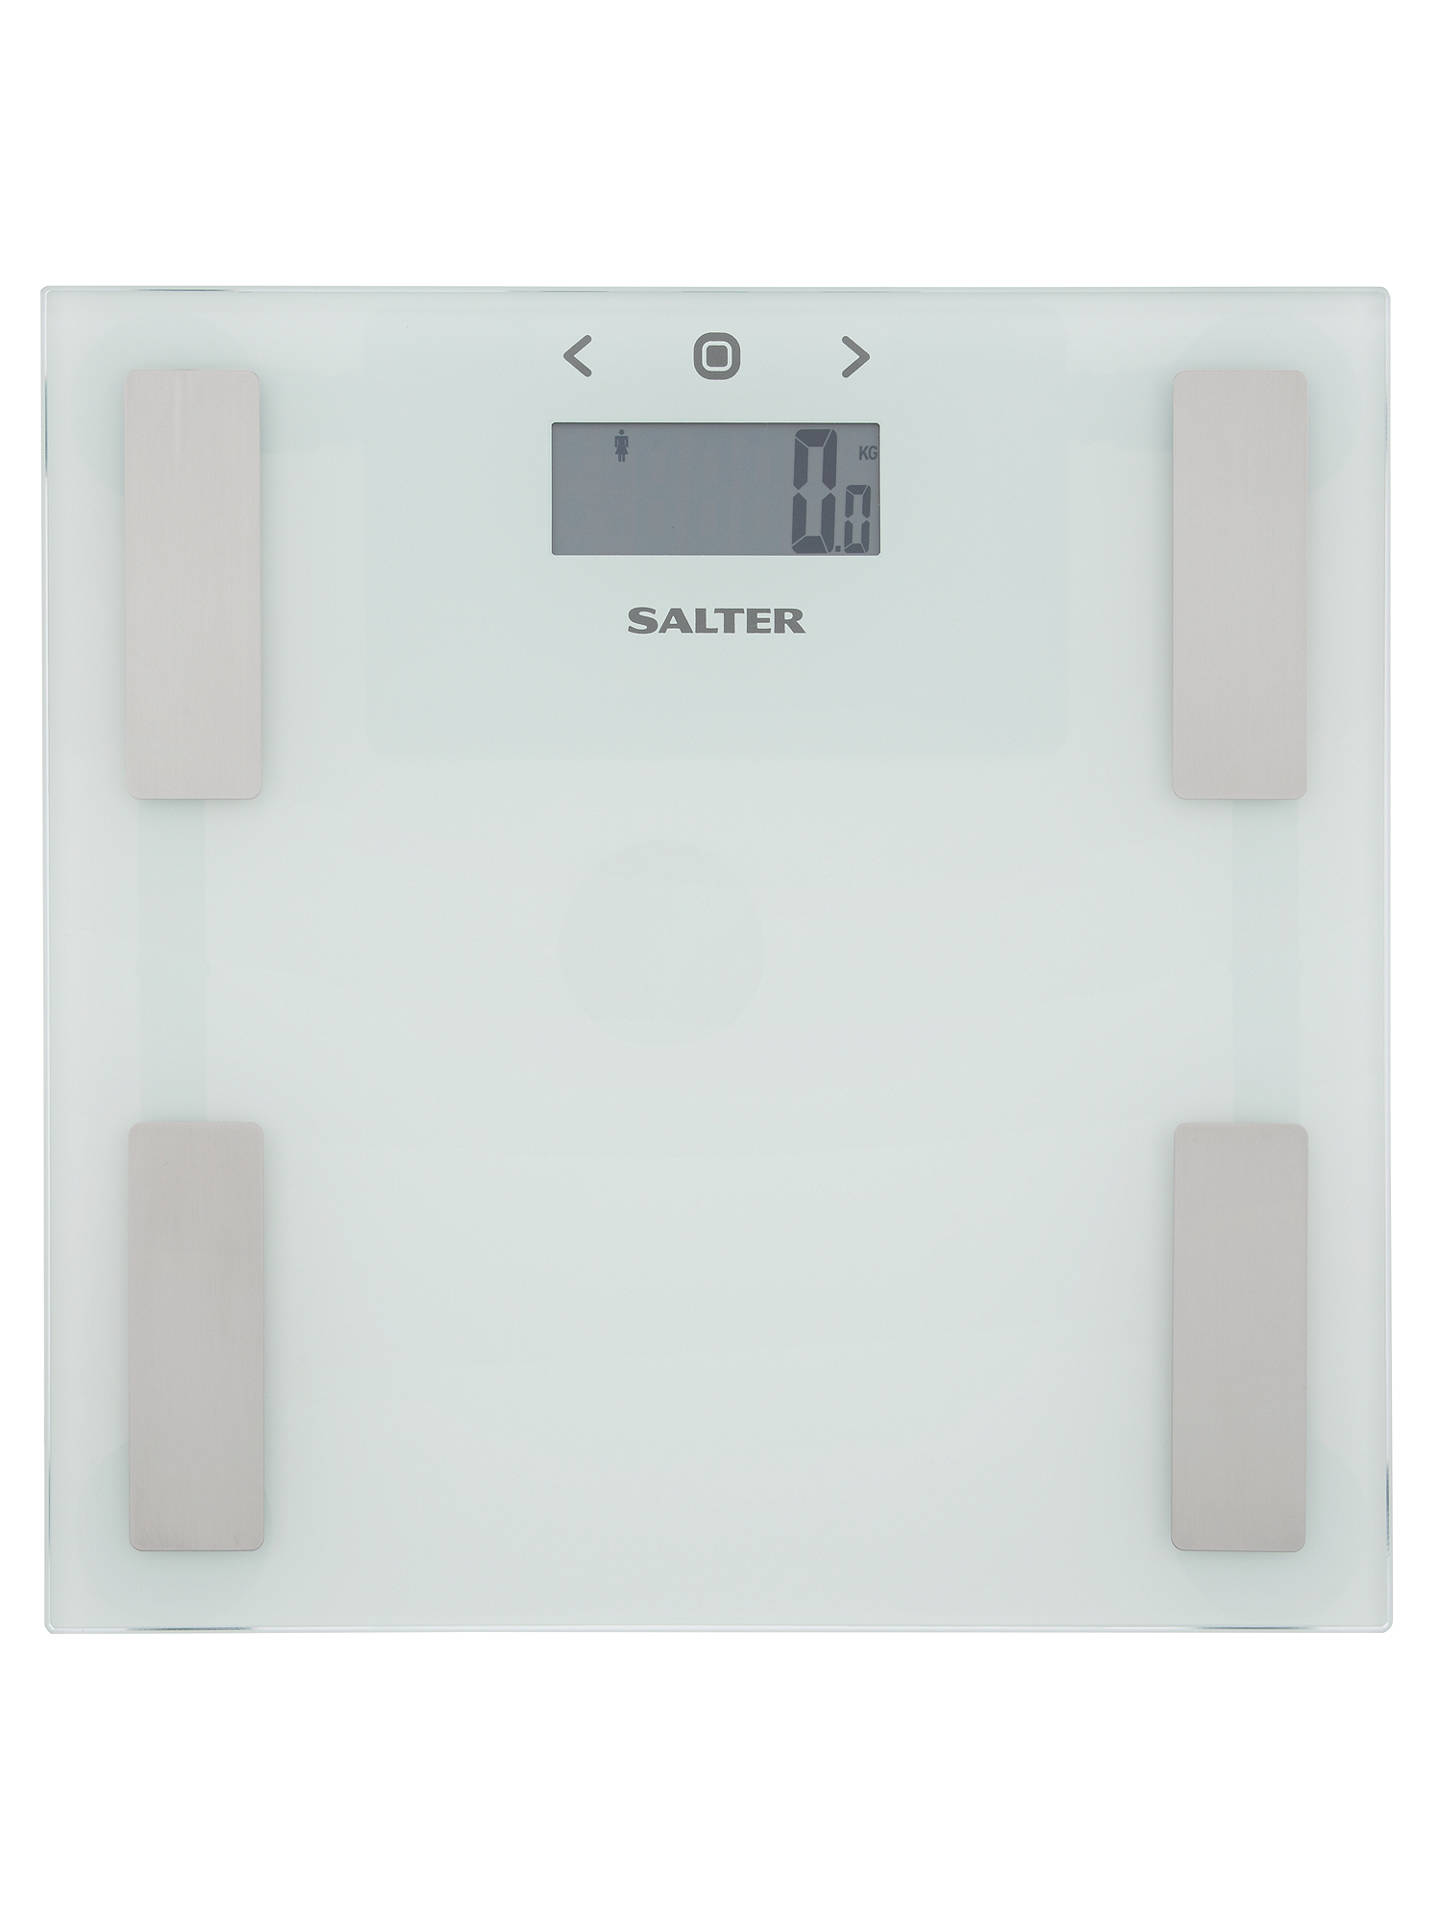 Salter 9150 Analyser Bathroom Scale White At John Lewis Partners